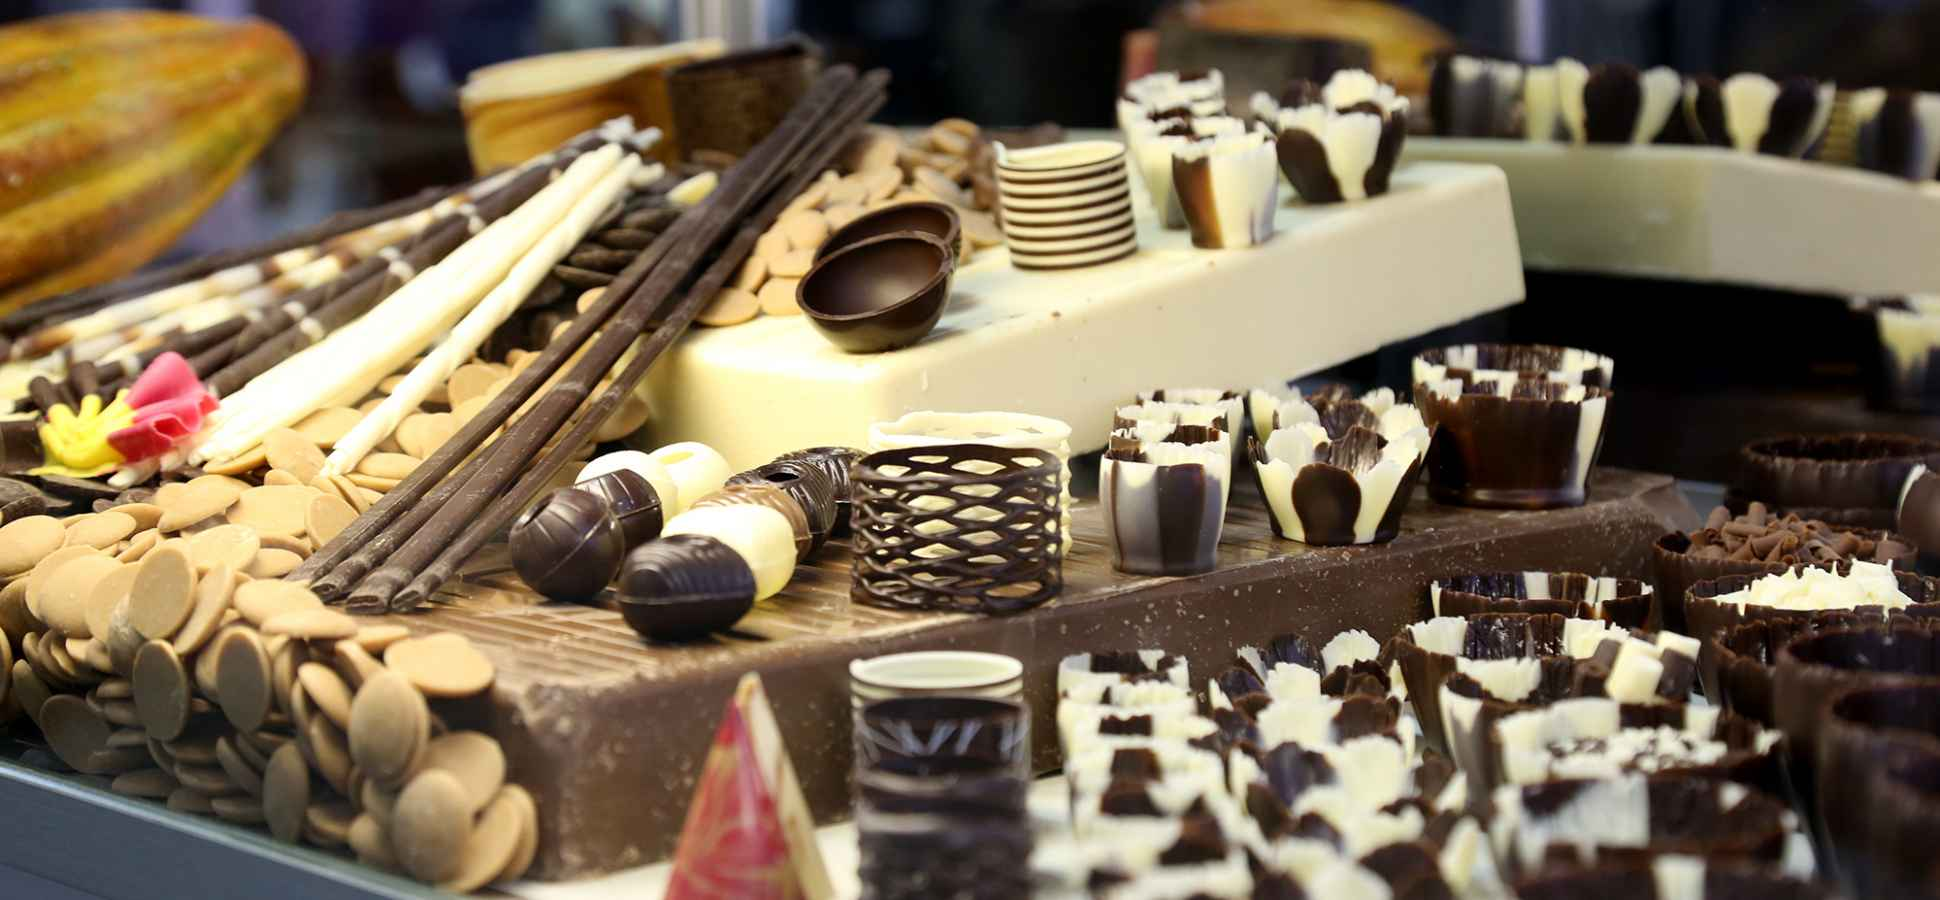 The 2015 Fancy Food Show In New York  One Smorgasbord You Won t Want to  Miss   Inc comThe 2015 Fancy Food Show In New York  One Smorgasbord You Won t  . Fancy Food Show Nyc 2015. Home Design Ideas